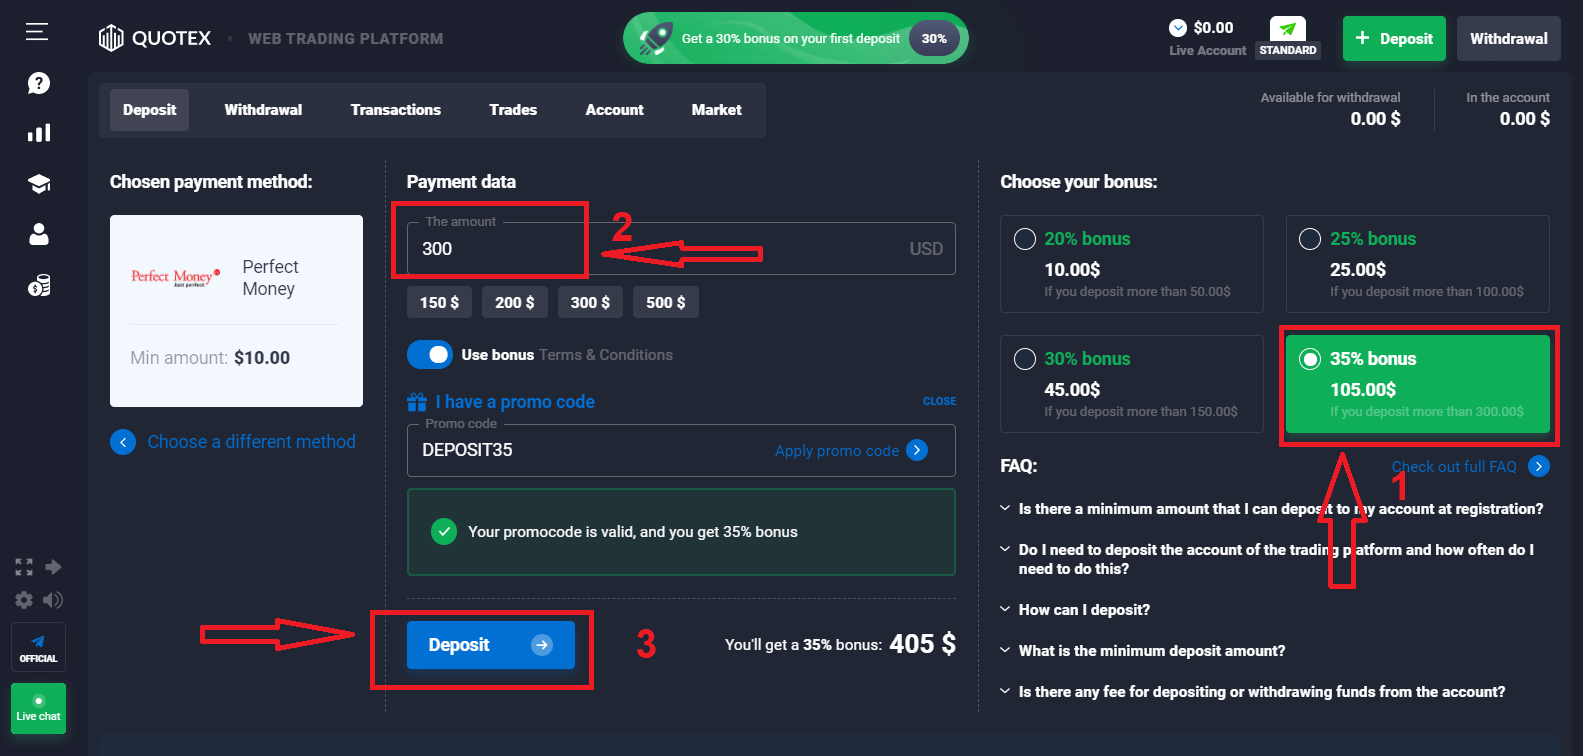 How to Login and Deposit Money in Quotex